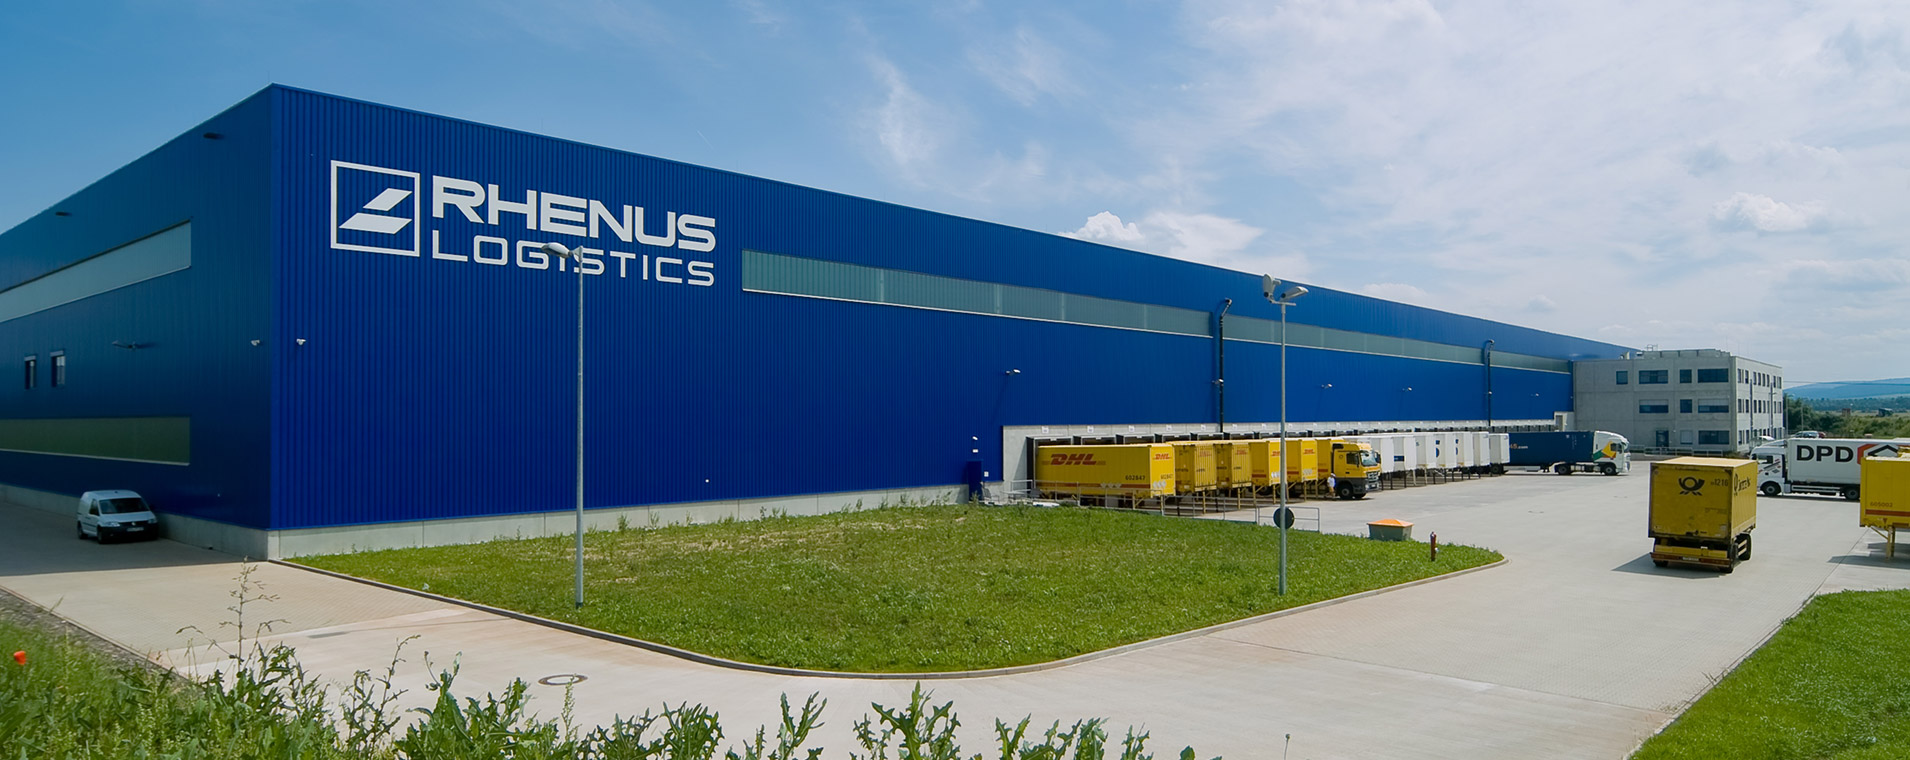 Logistik architektur Rhenus